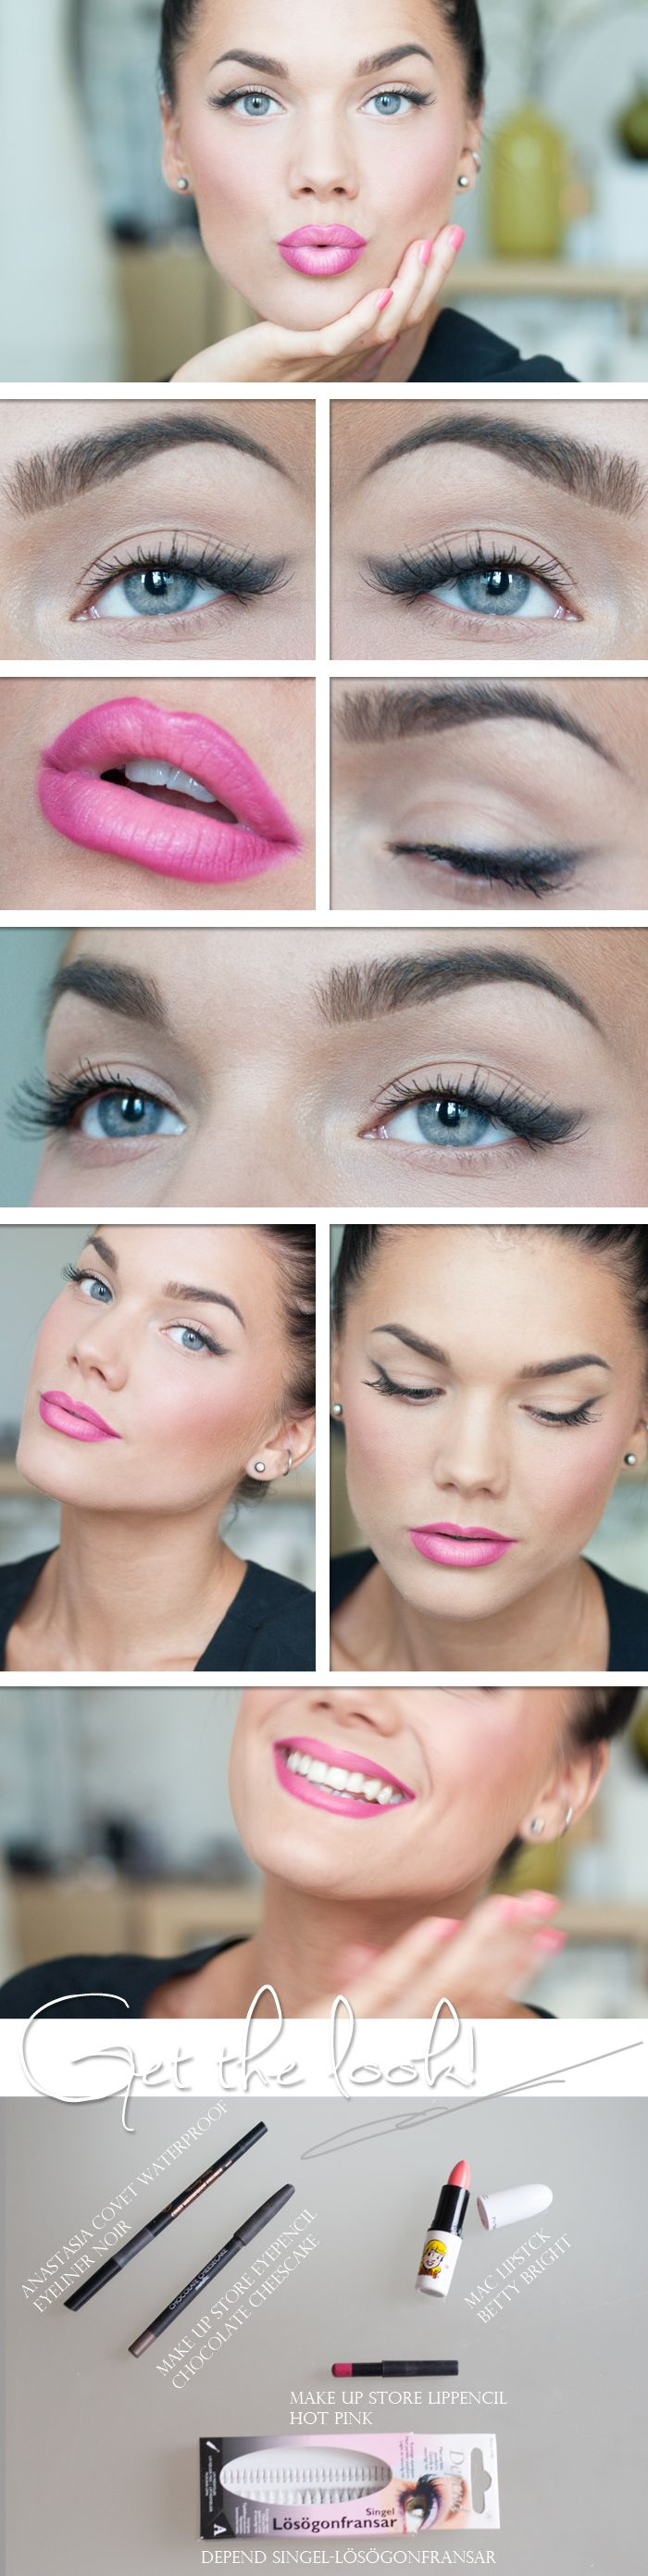 Don't like the pink lips but LOVE the eye makeup